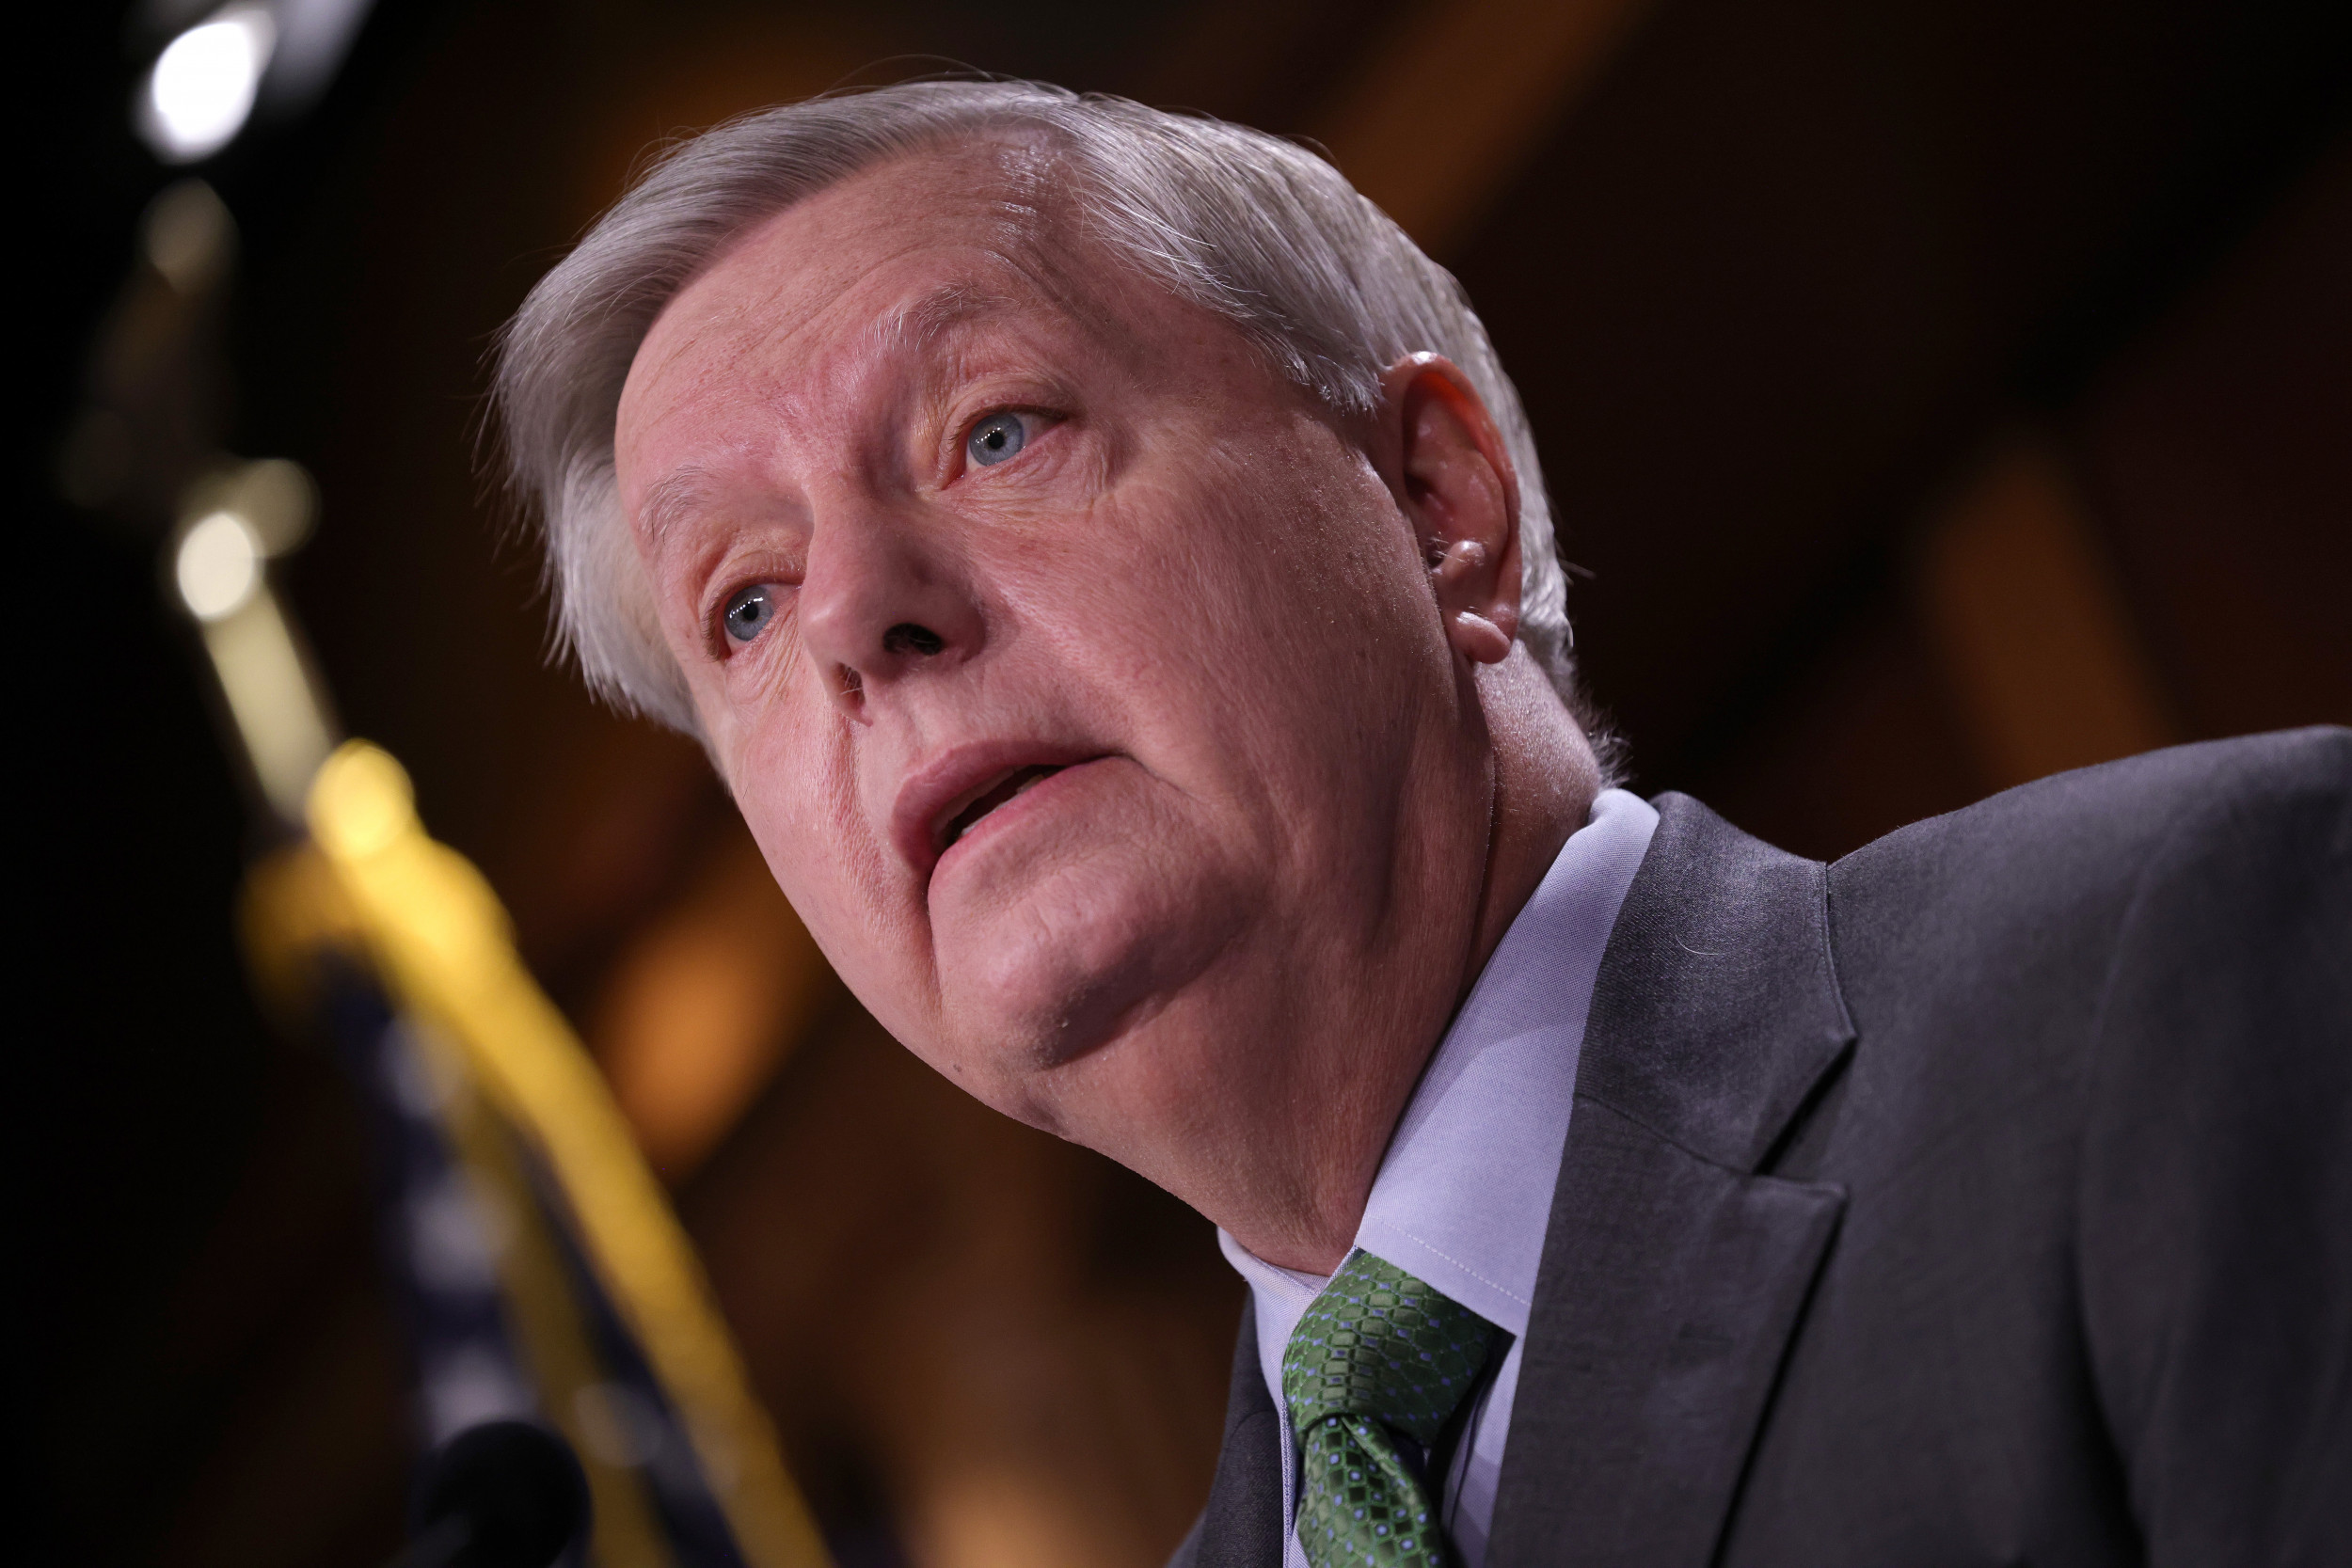 Lindsey Graham Shows Off Rifle Skills, Warns of 'Breakdown of Law and Order'